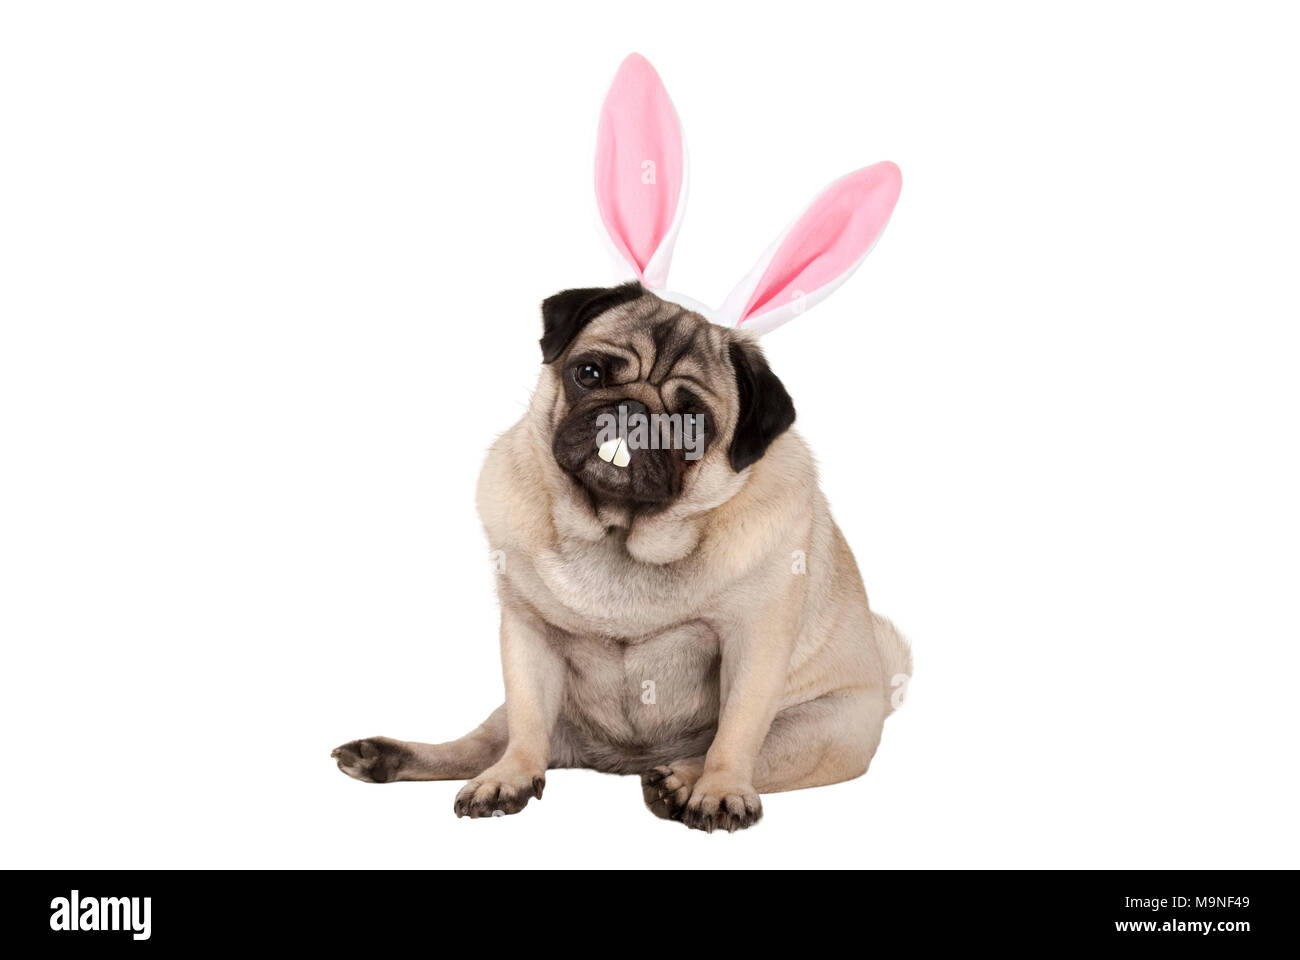 sweet cute pug puppy dog sitting down with easter bunny ears and teeth, isolated on white background - Stock Image